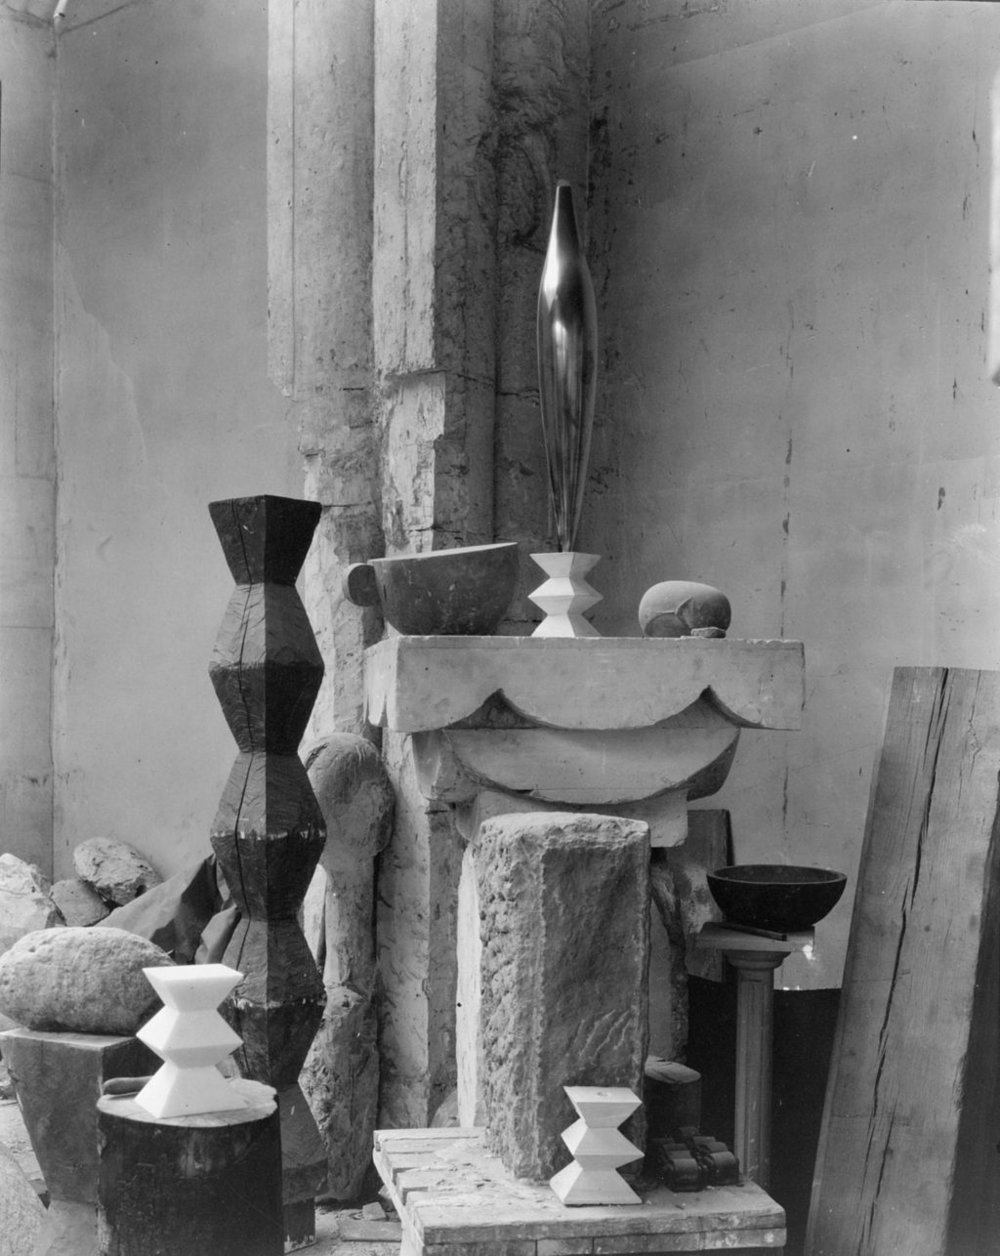 1024px-Edward_Steichen_-_Brancusi's_studio,_1920-ABSTRACT.jpeg